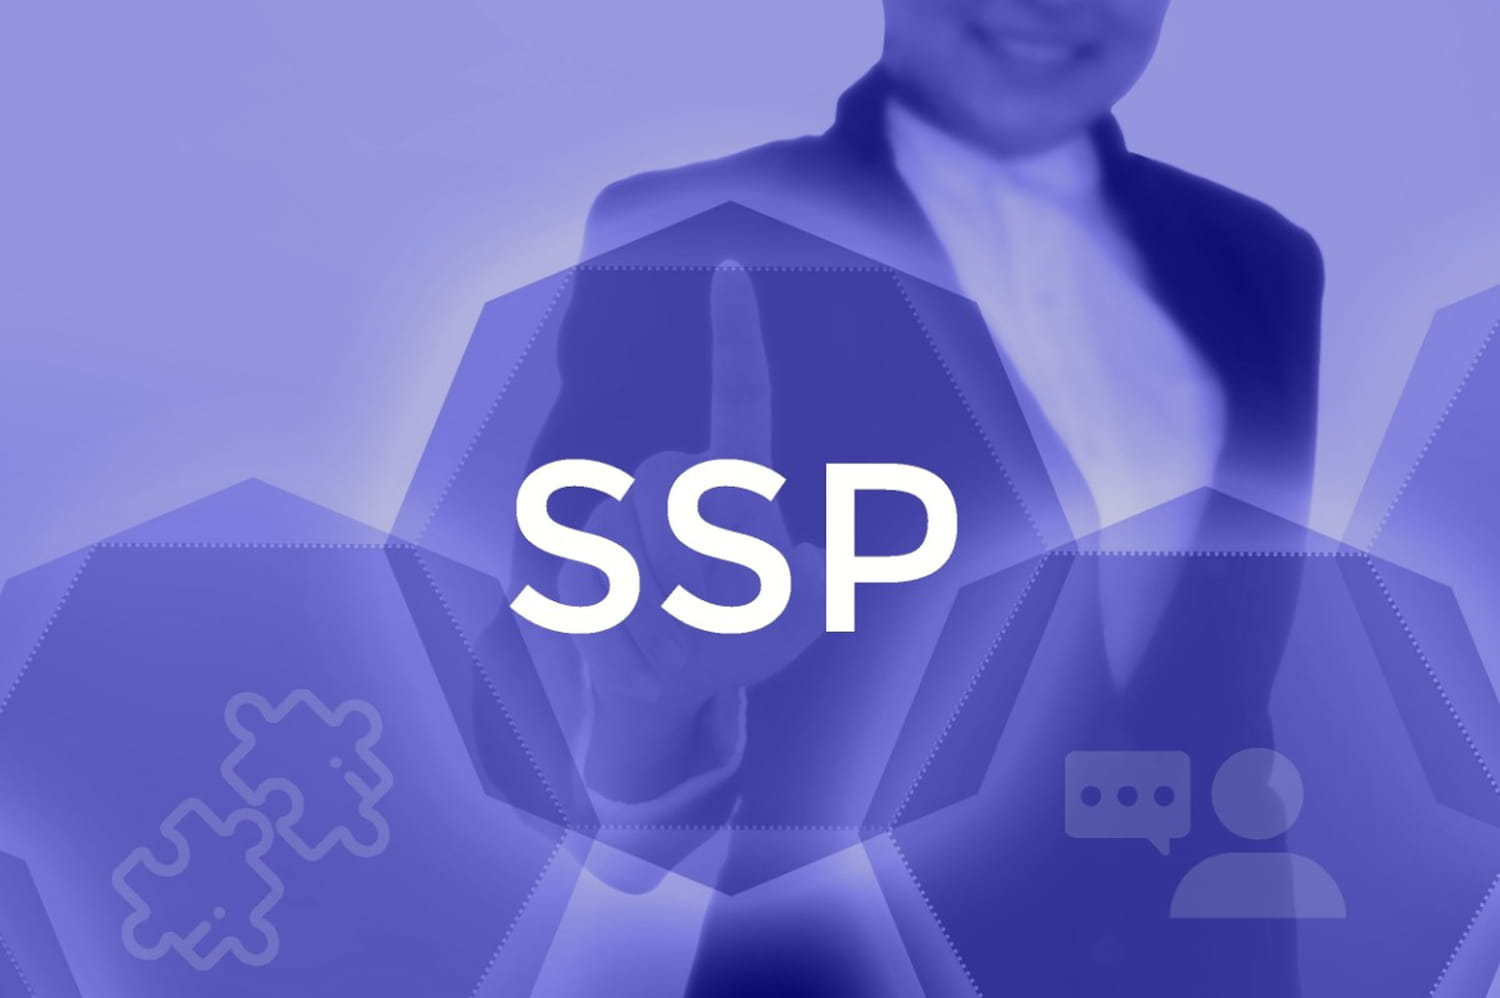 Supply-side platform (SSP): définition, synonymes et exemples